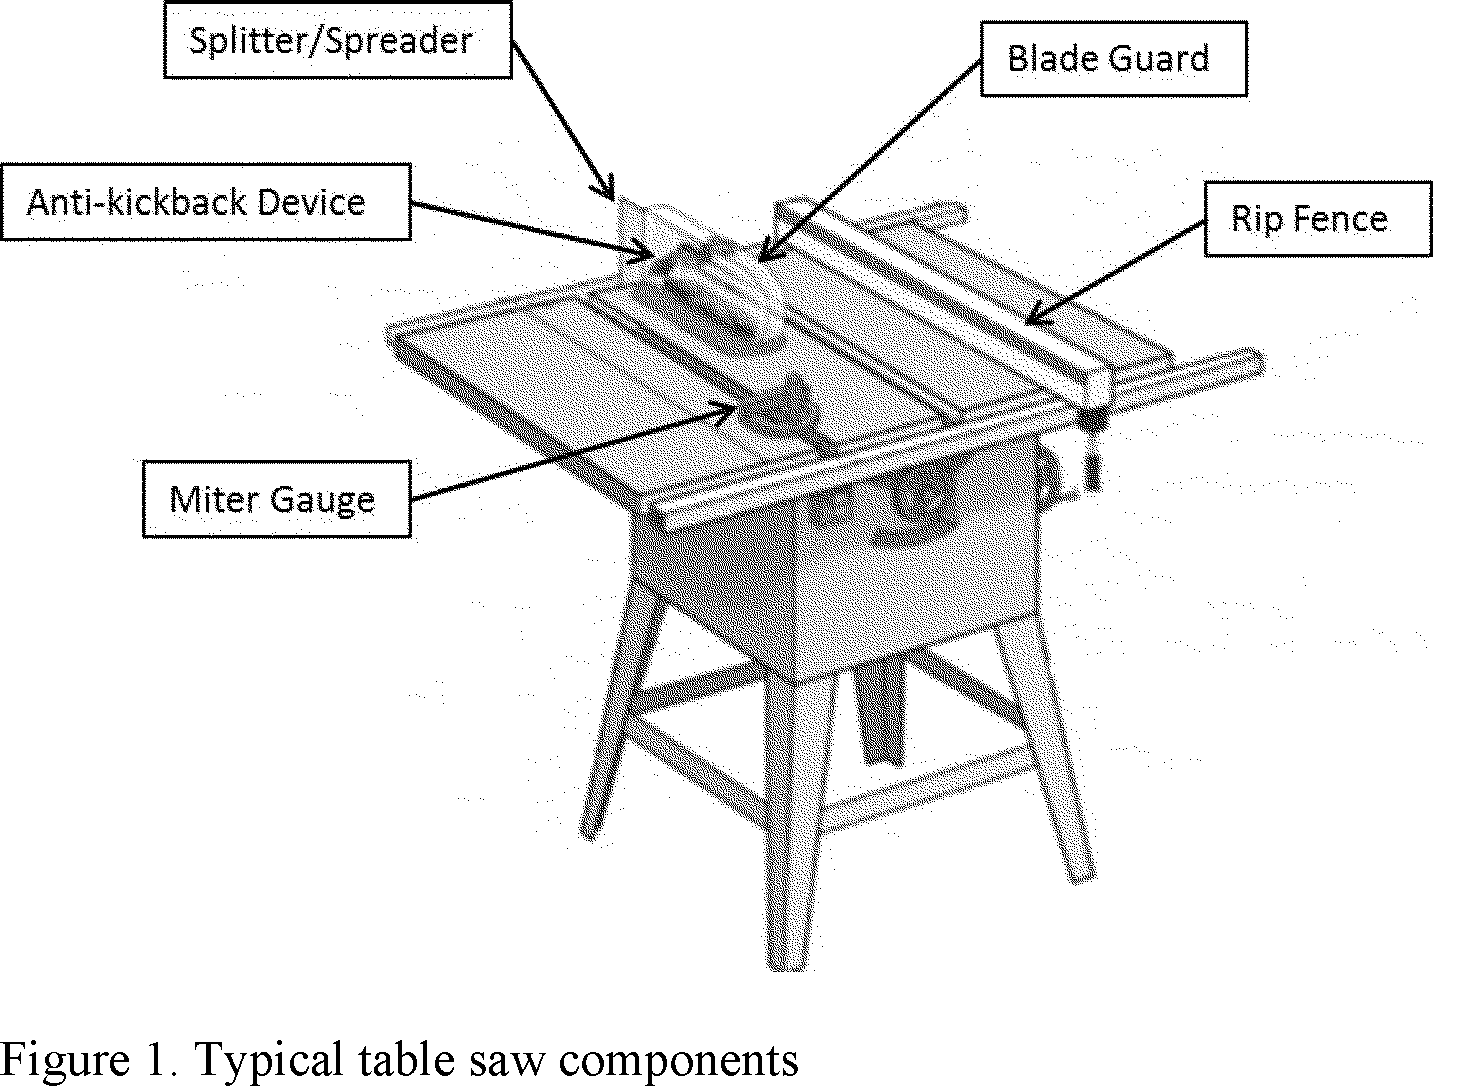 Federal register safety standard addressing blade contact table saws generally fall into three product types bench saws contractor saws and cabinet saws although there is no exact dividing line the distinction greentooth Gallery